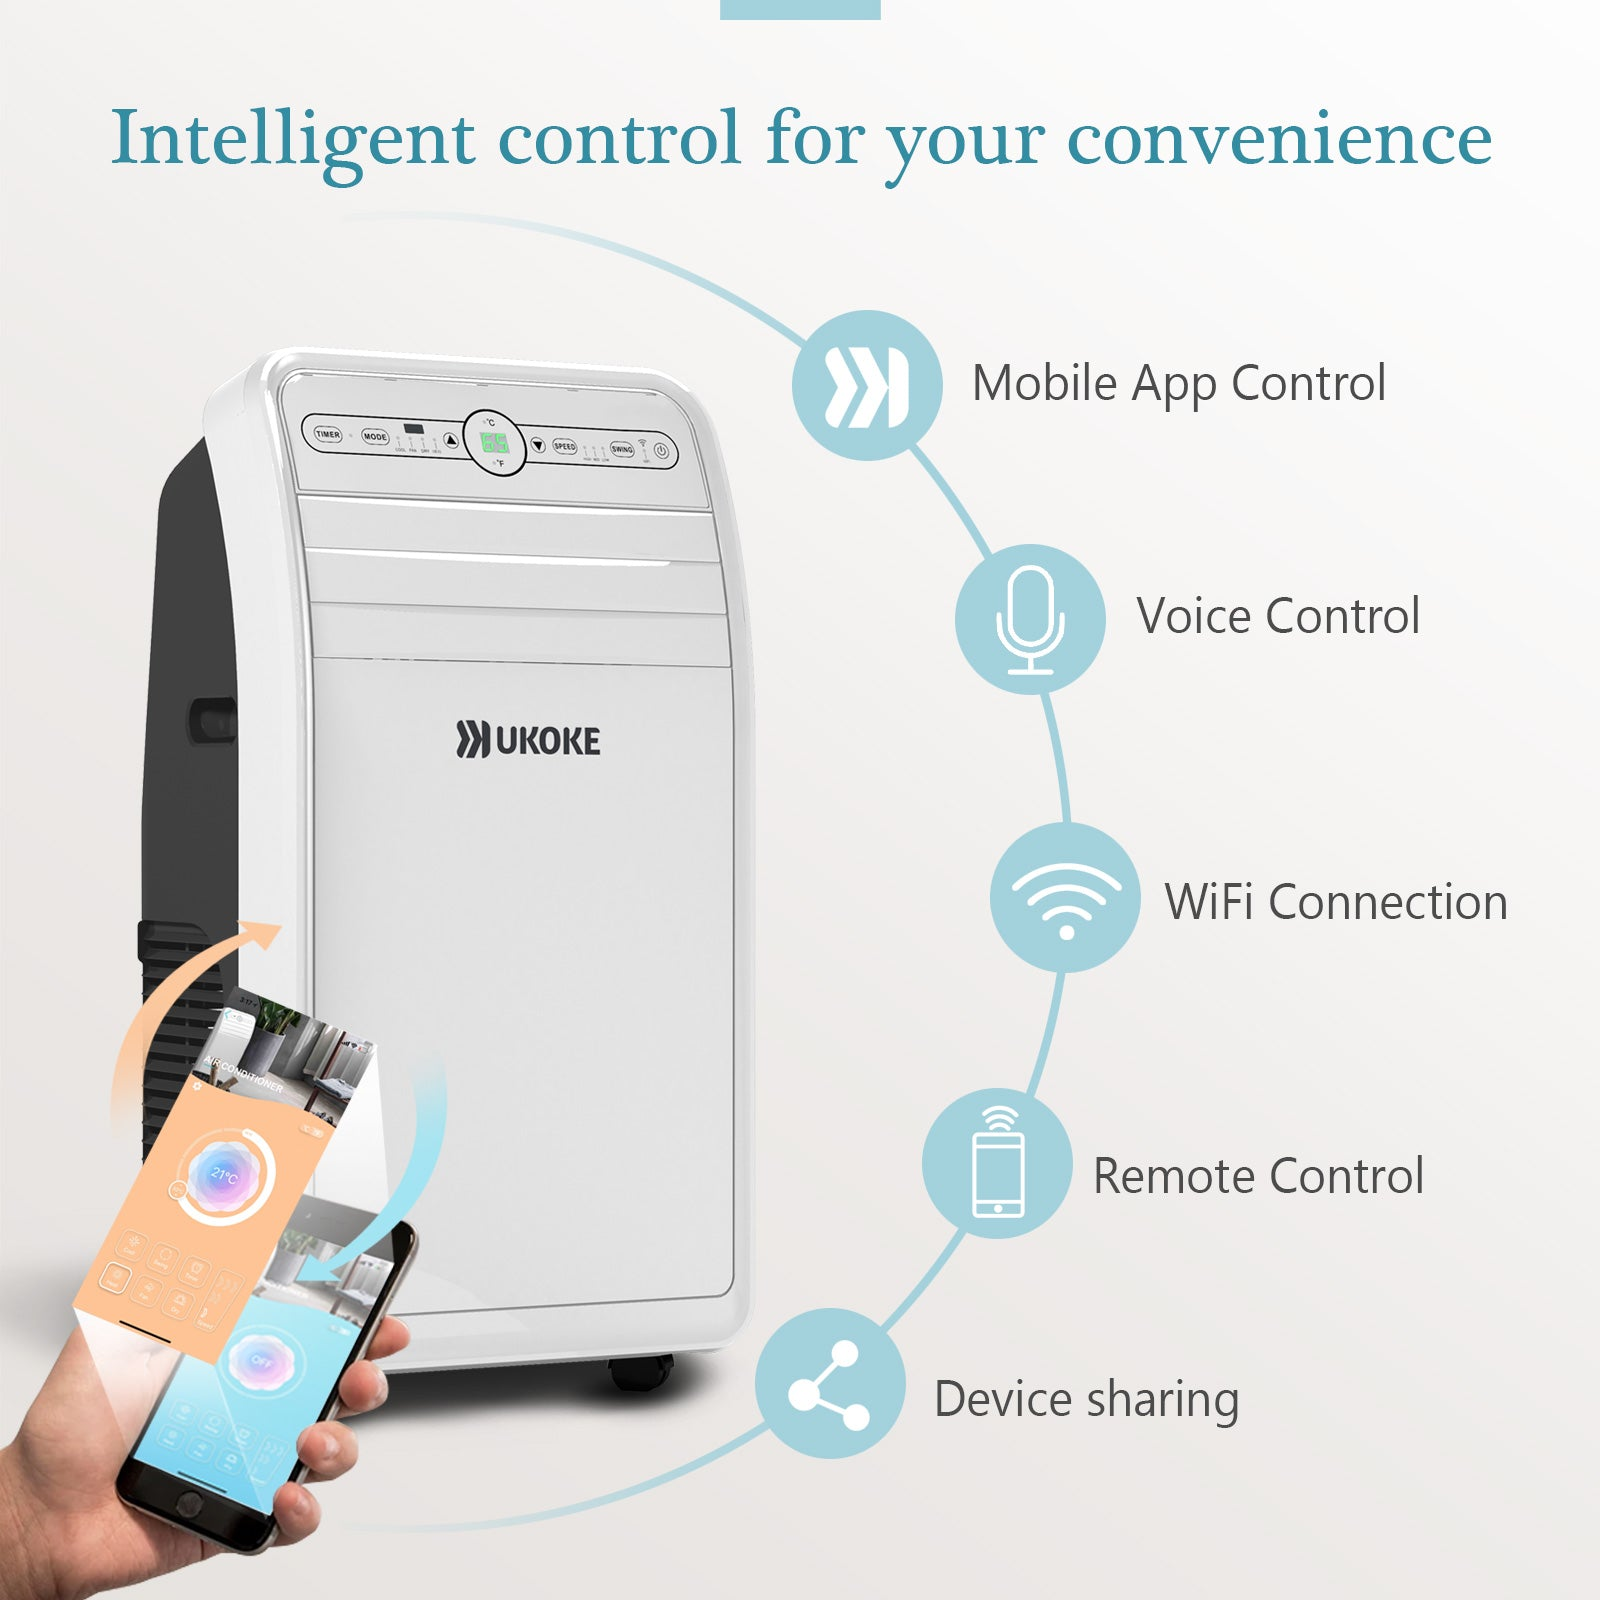 Ukoke USPC01W Smart Wifi Portable Air Conditioner, Works